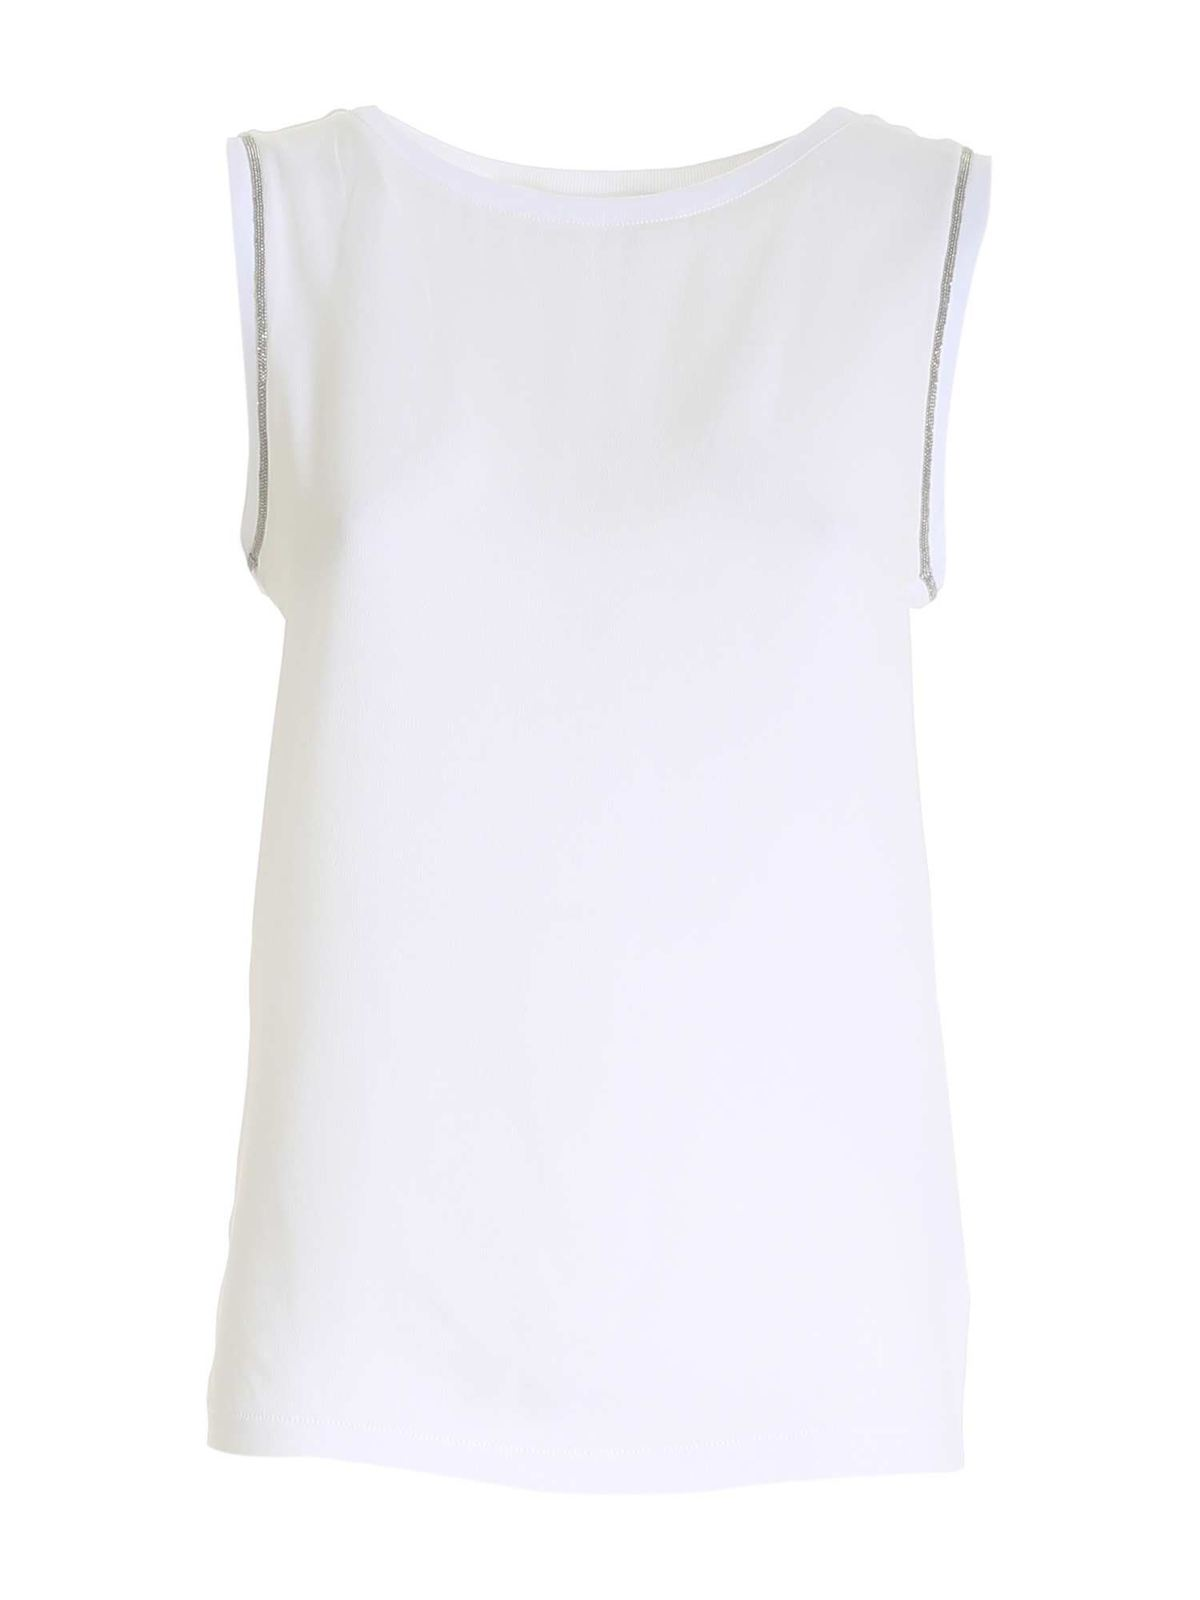 Fabiana Filippi CREPE INSERT TOP IN WHITE